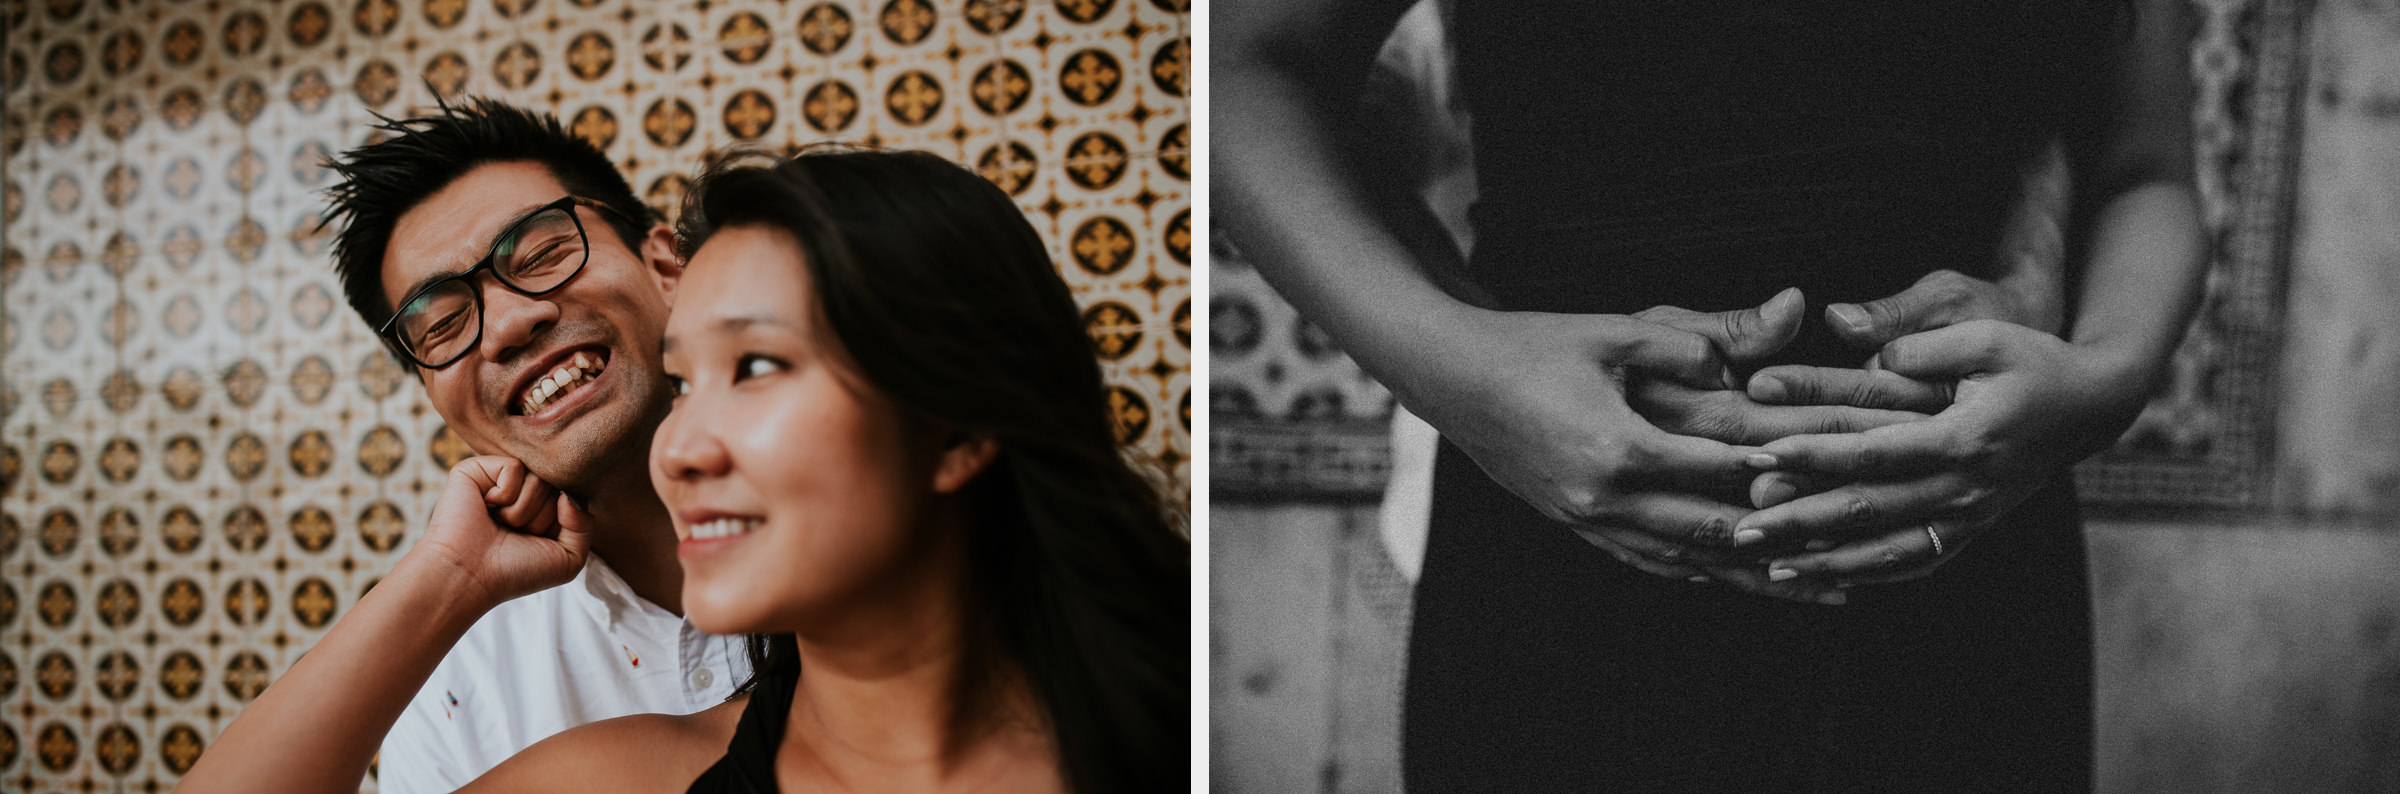 two photo montage of a asian couple in lisbon streets with tiles in background